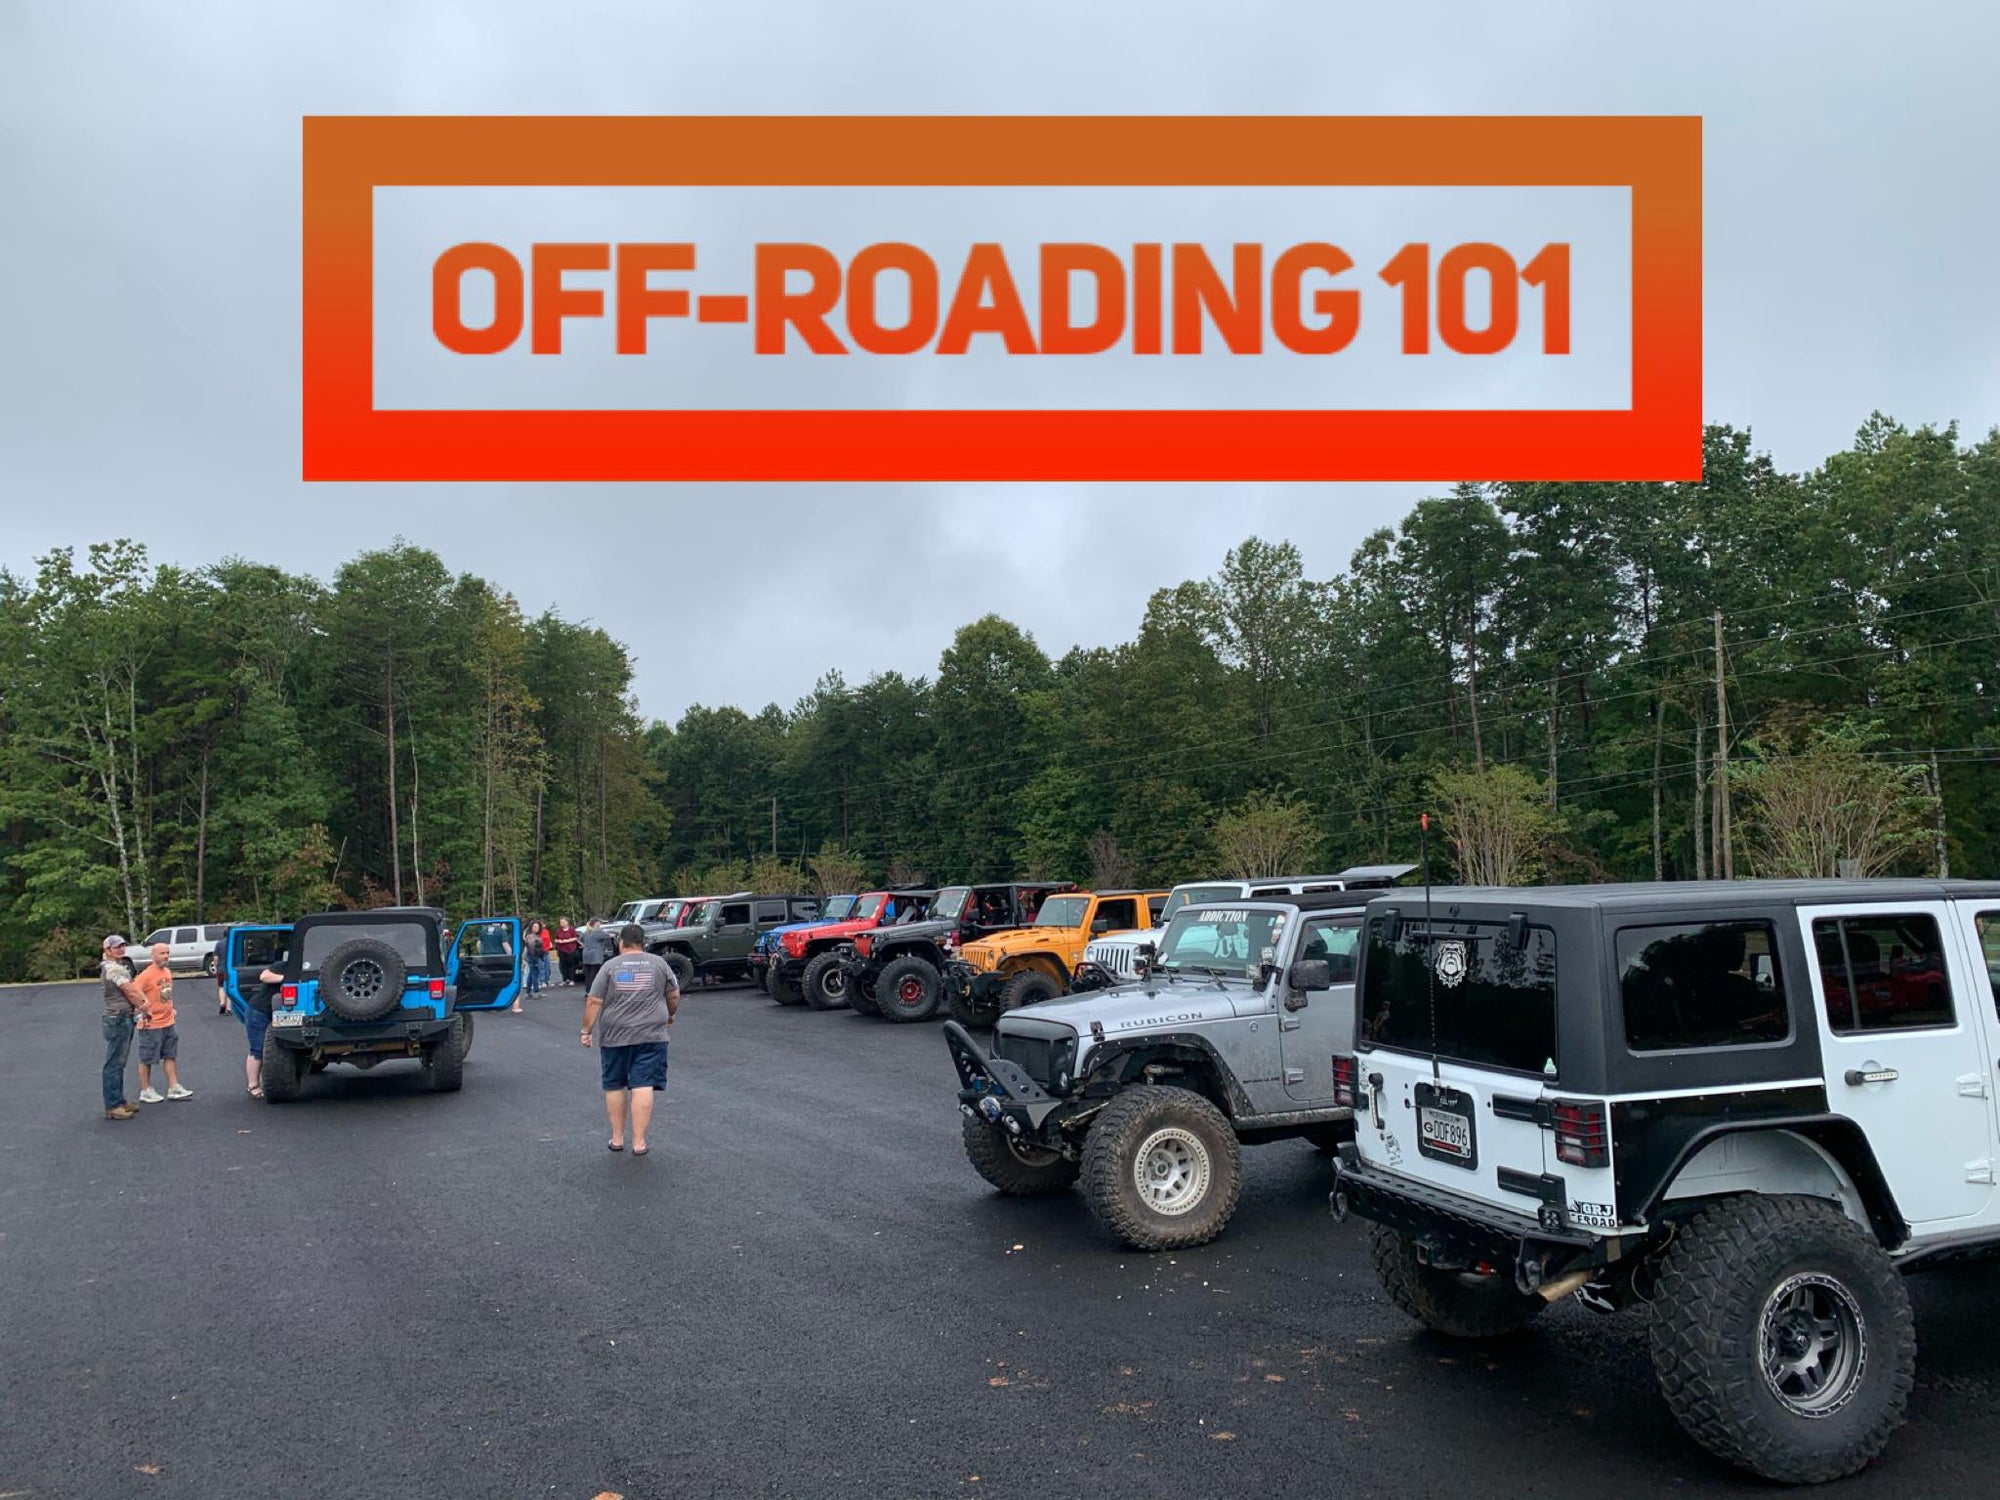 Off-roading 101 - Offroad Adventures - Oraoffroad.com